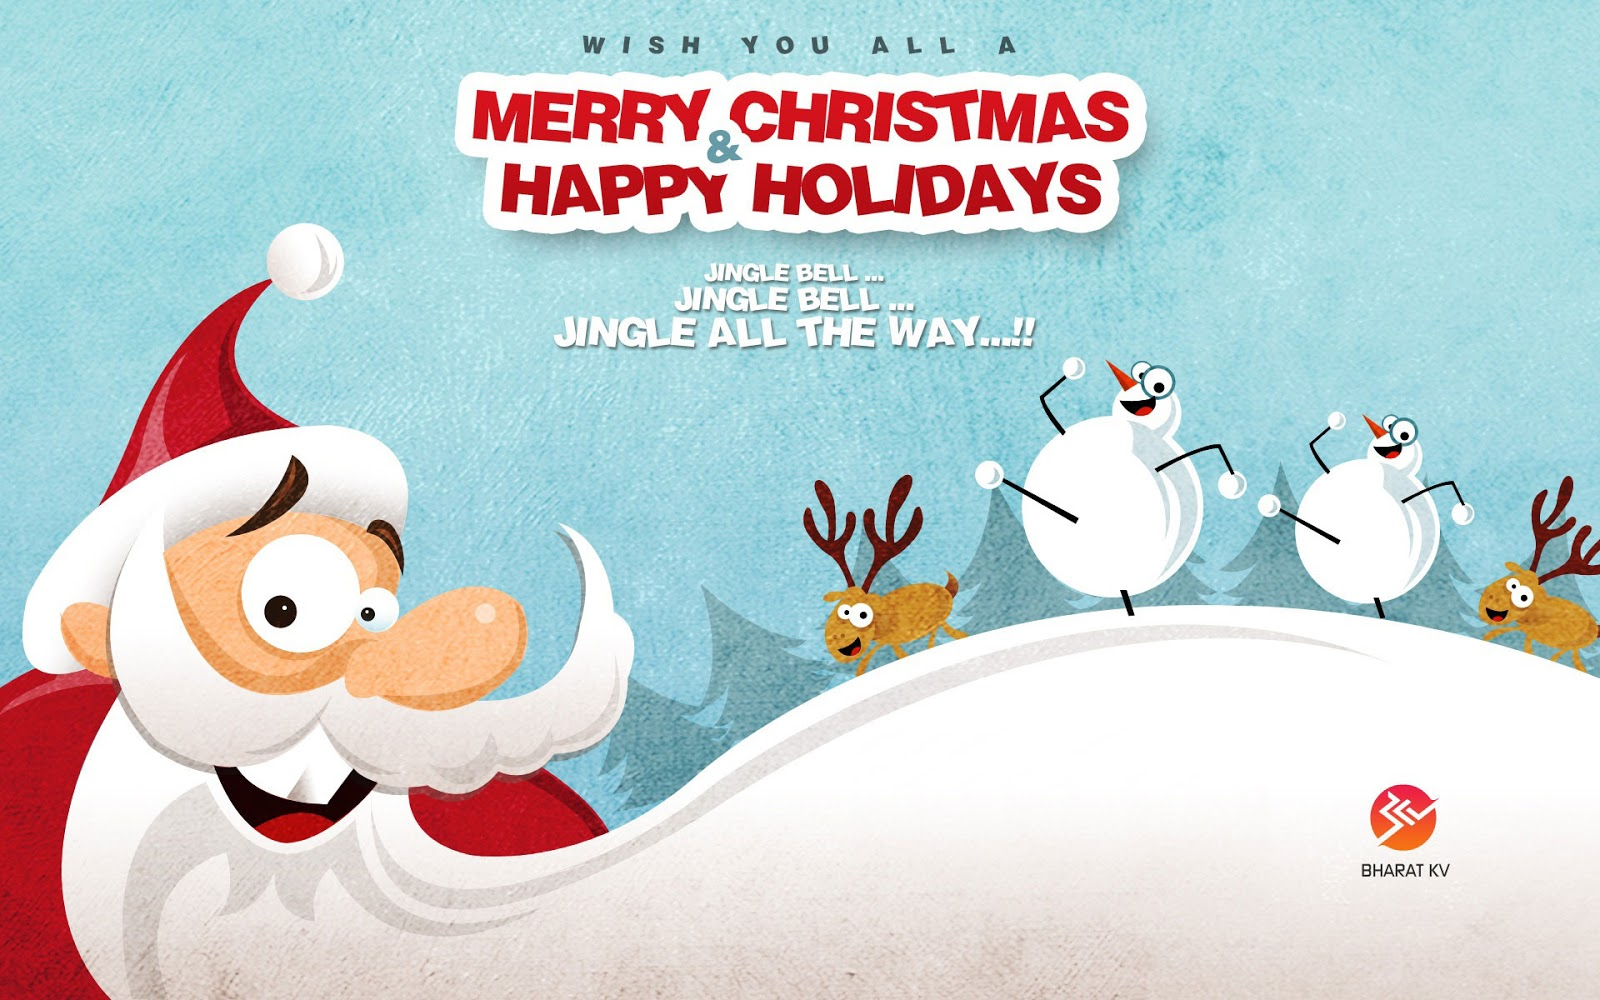 http://3.bp.blogspot.com/-rqL5dYXjc0s/UMo1jtjoIlI/AAAAAAAAMxU/NOqiG_vSRWw/s1600/merry-christmas-happy-holidays-desktop-%26-mac-wallpaper.jpg